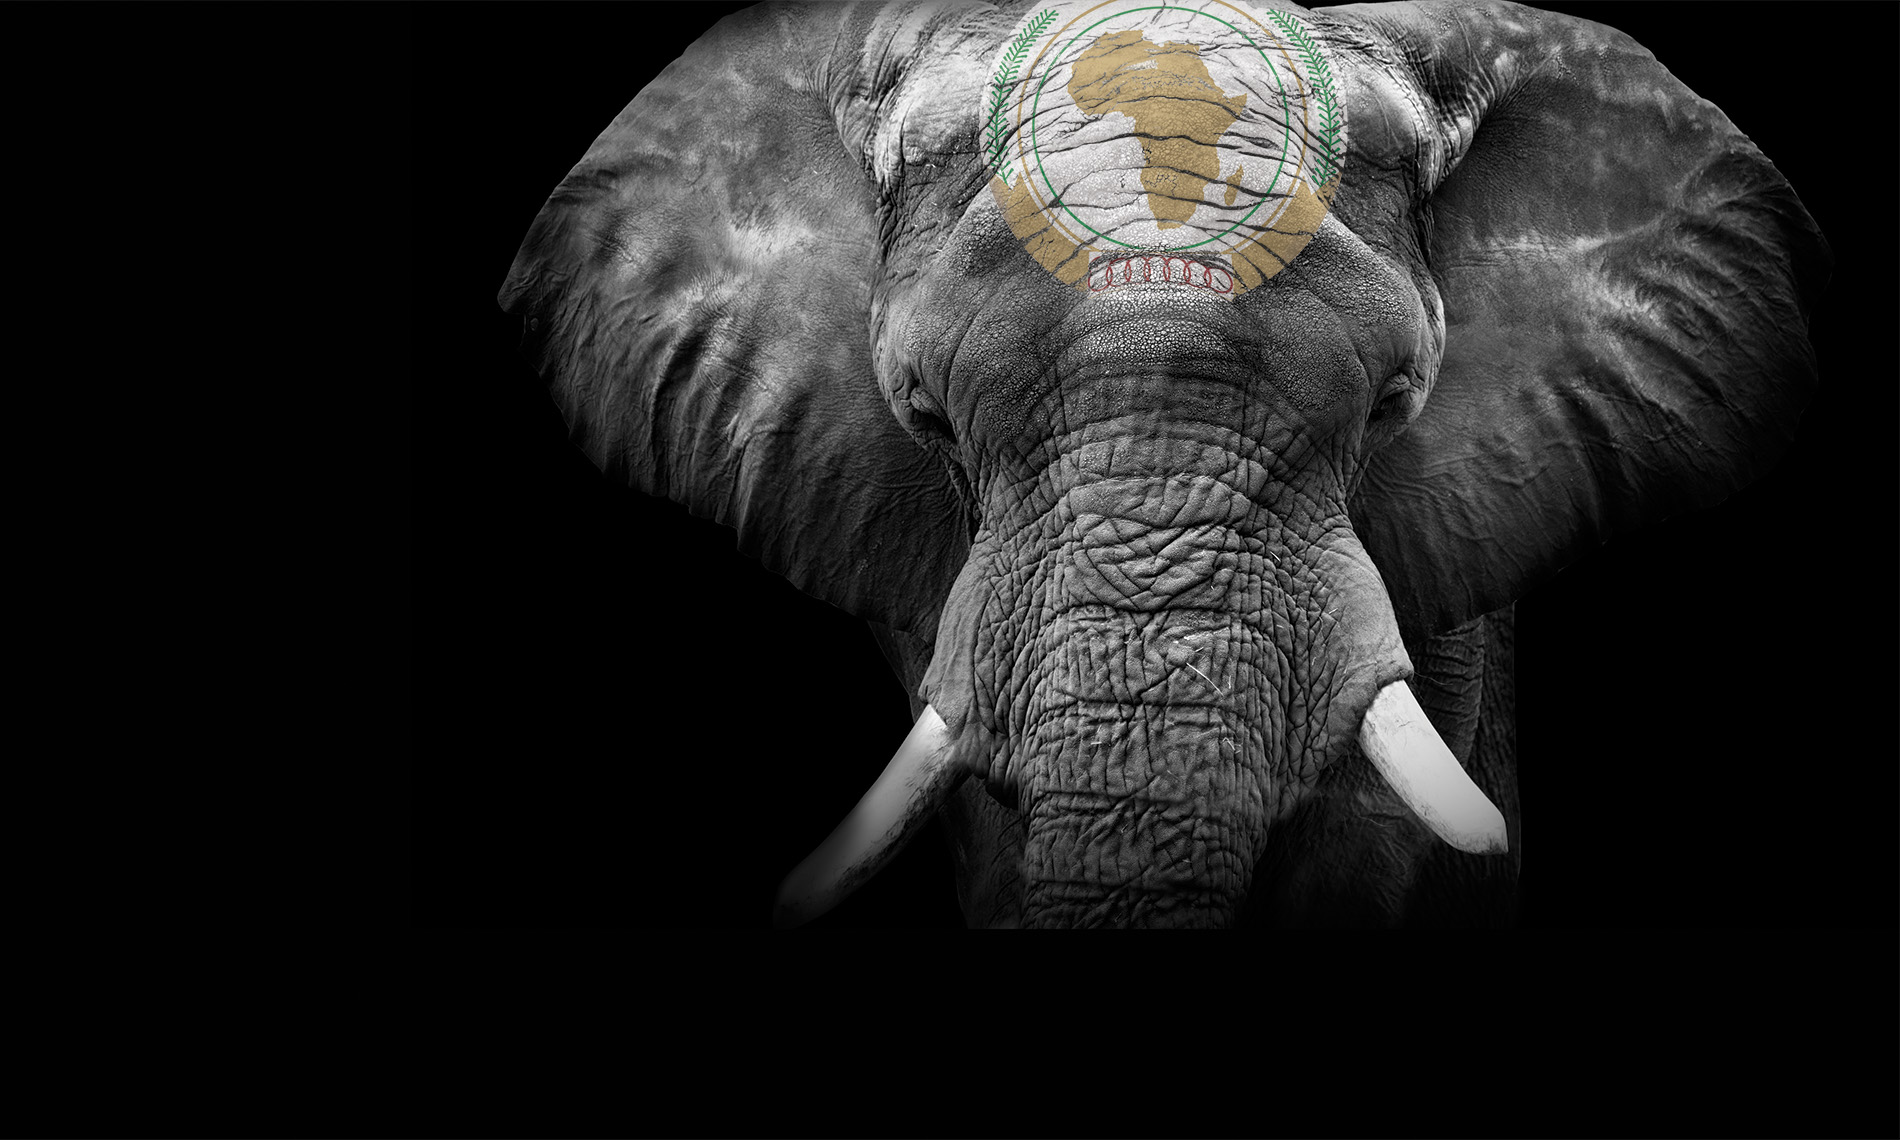 Elephant with African Union logo painted on head